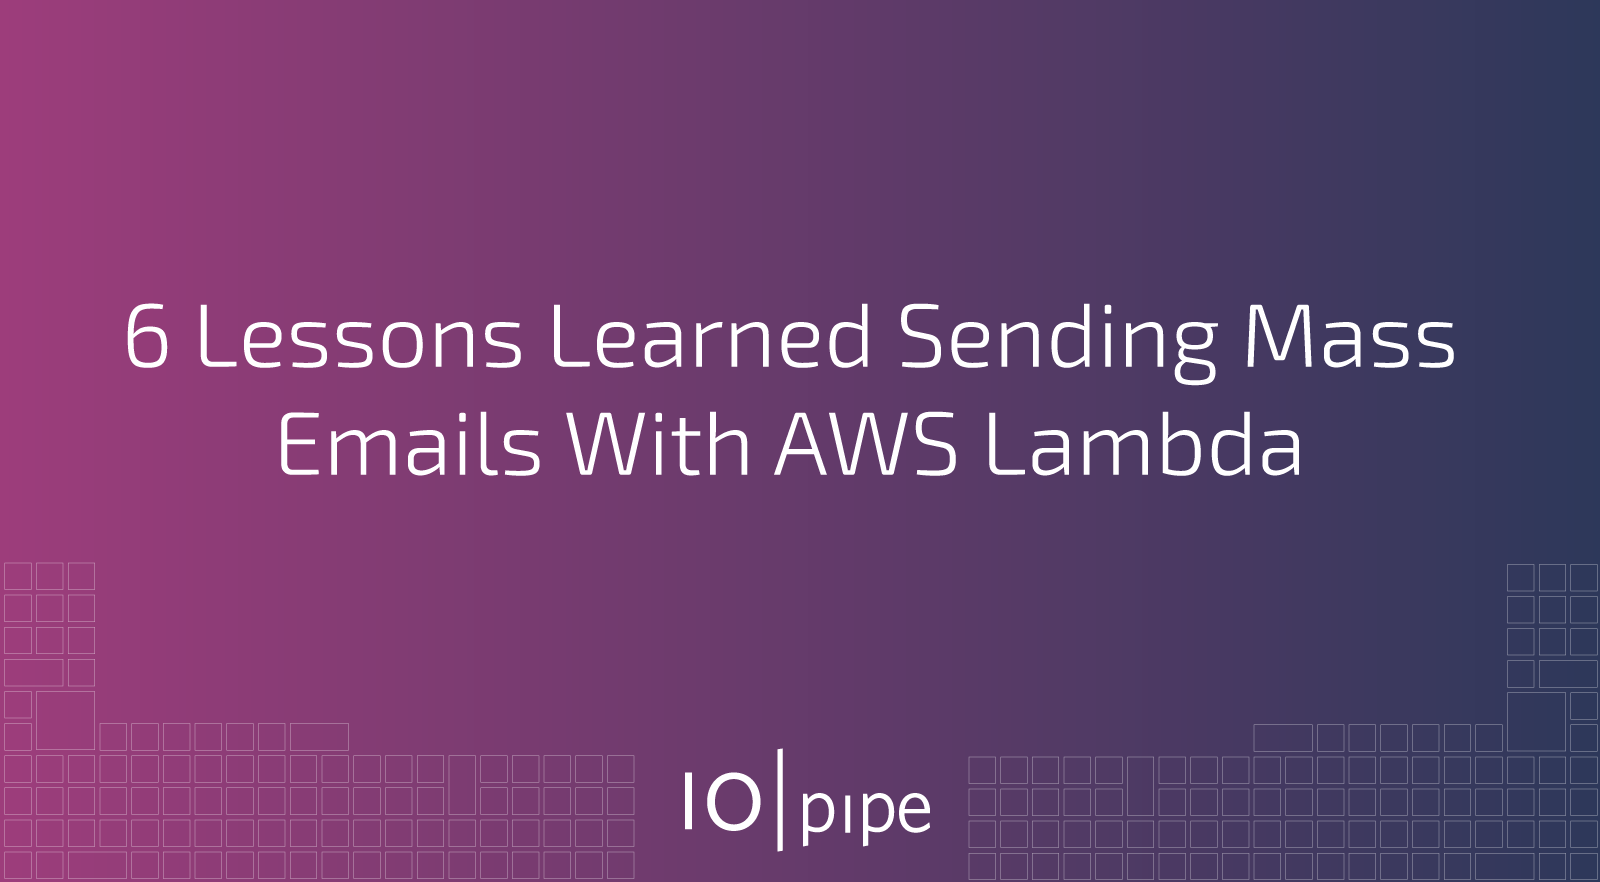 6 Lessons Learned Sending Mass Emails With AWS Lambda